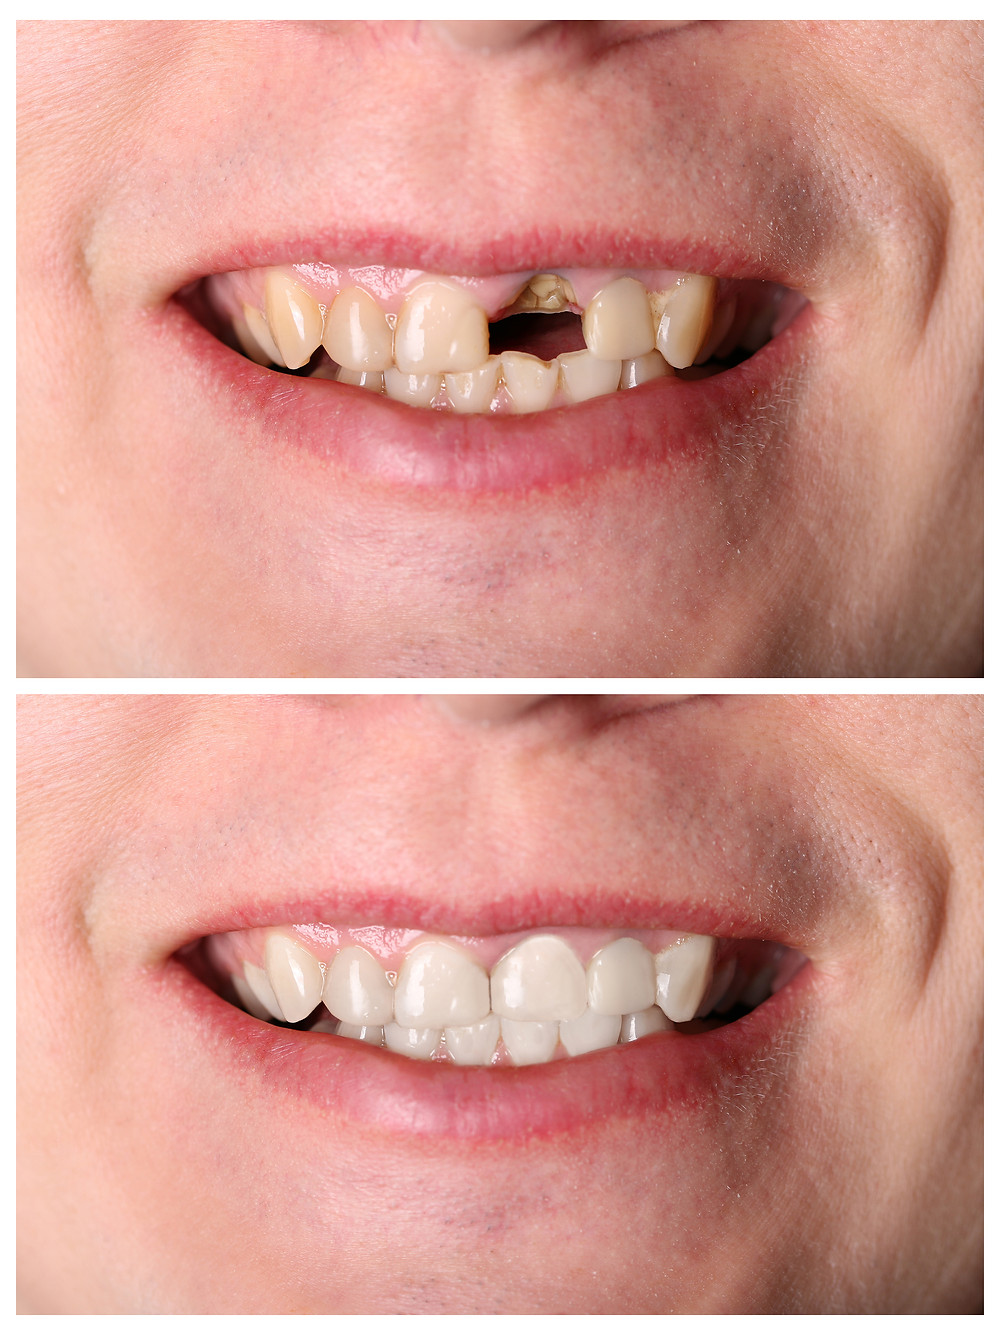 Braces with missing teeth before and after